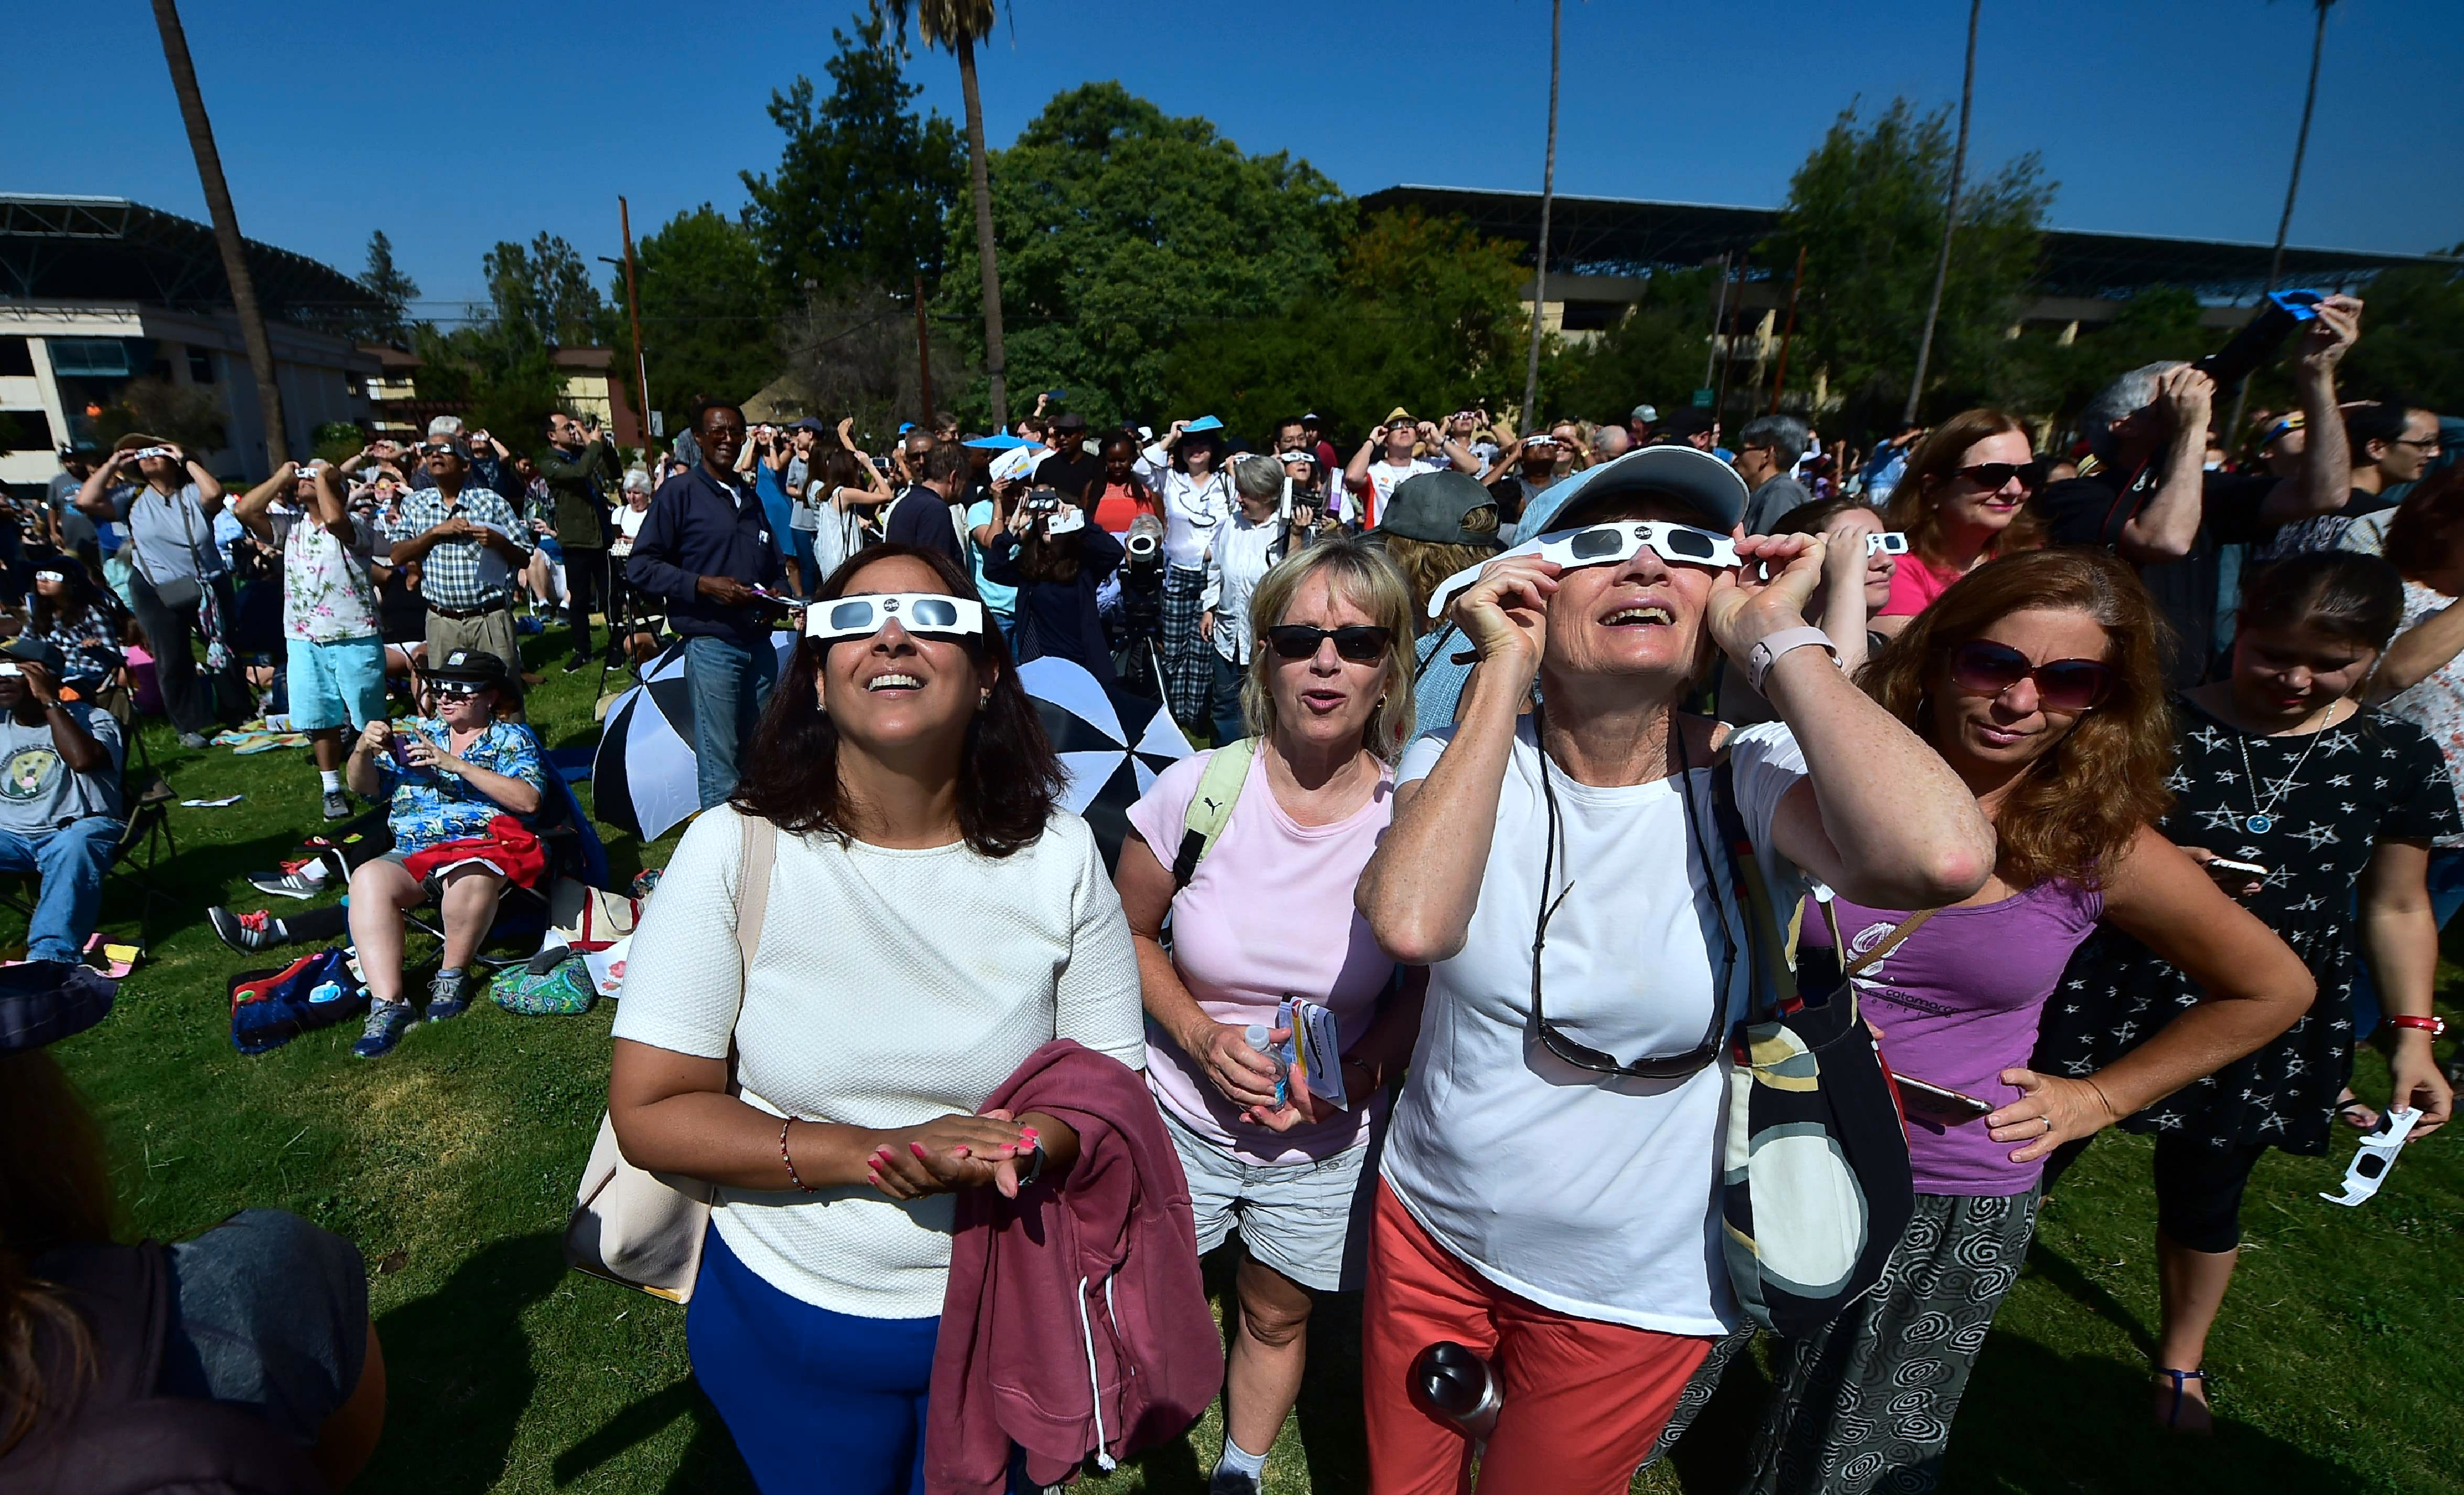 Hold on to those eclipse glasses they amp apos re